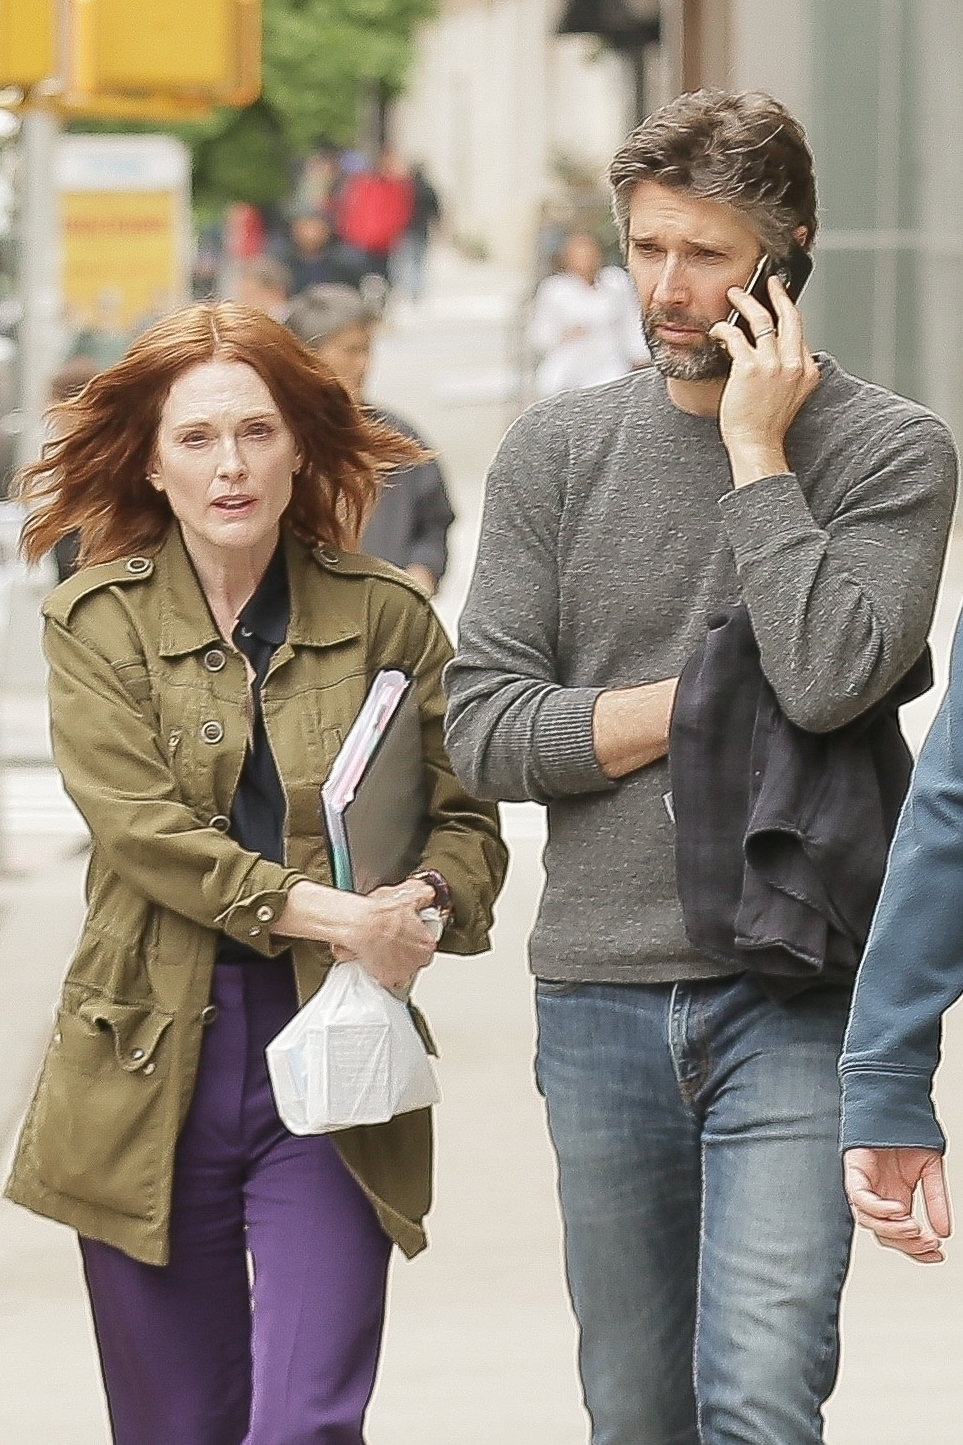 Julianne Moore and  her husband, Bart Freundlich, were snapped as they stepped out in the West Village neighborhood of New York City on June 4, 2018.